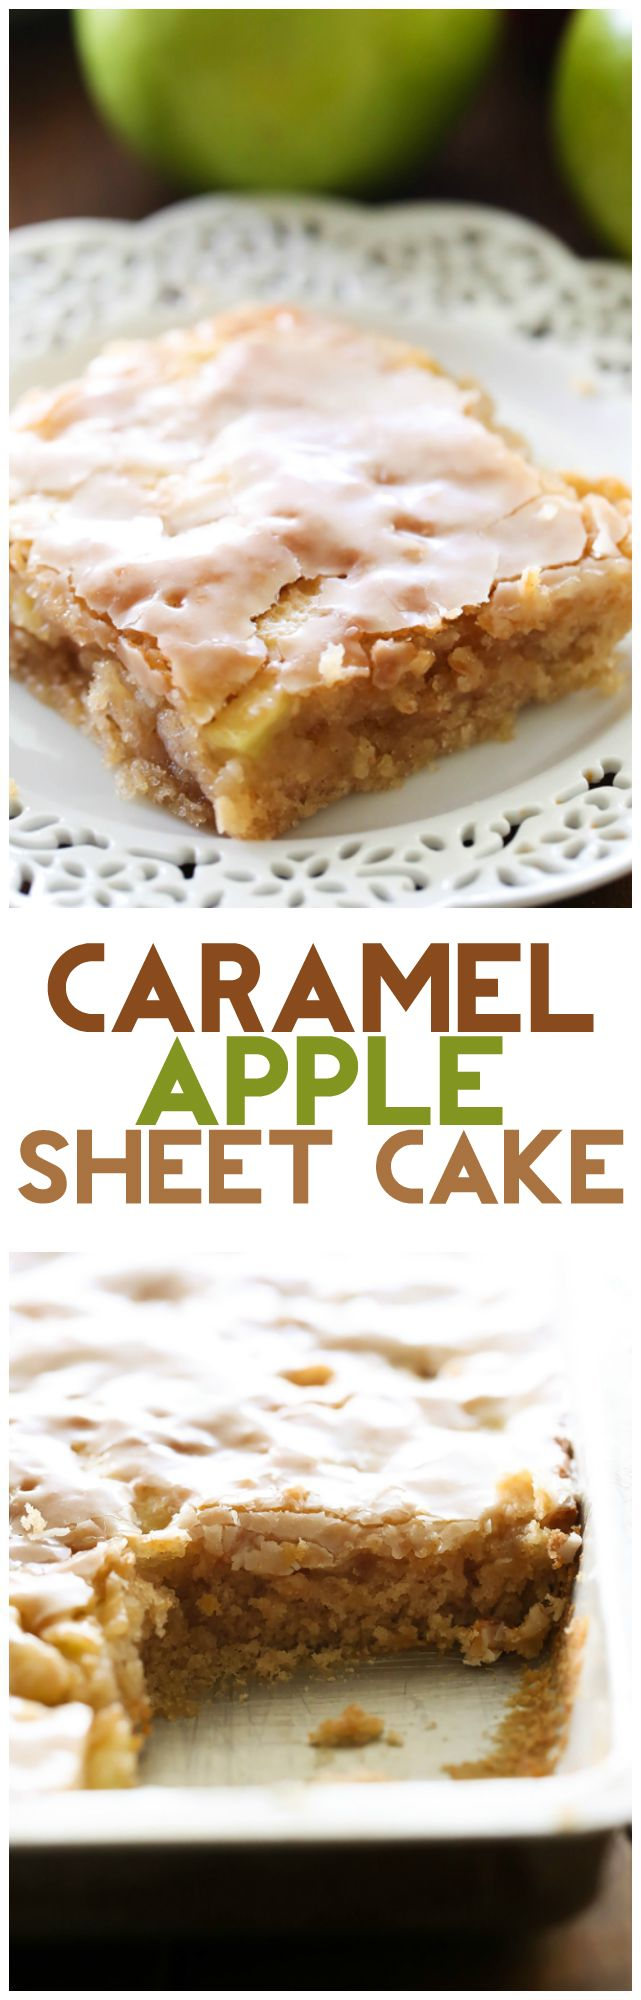 cheap flights compare uk shoe Caramel Apple Sheet Cake    this cake is perfectly moist and has caramel frosting infused in each and every bite  It is heavenly